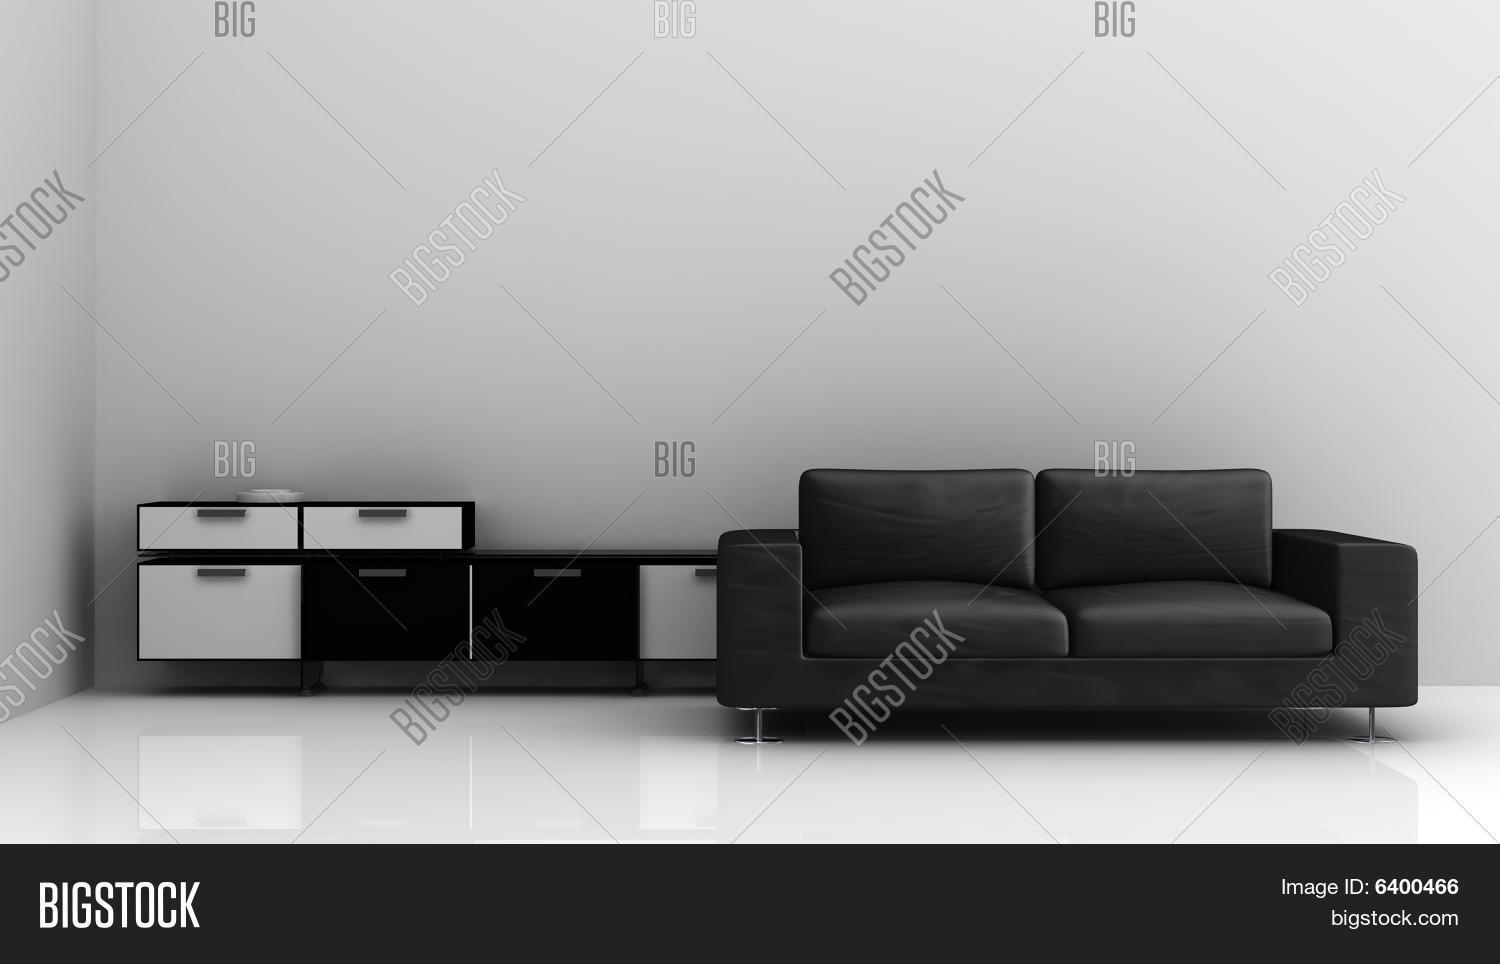 Outstanding Living Room Setting Image Photo Free Trial Bigstock Machost Co Dining Chair Design Ideas Machostcouk